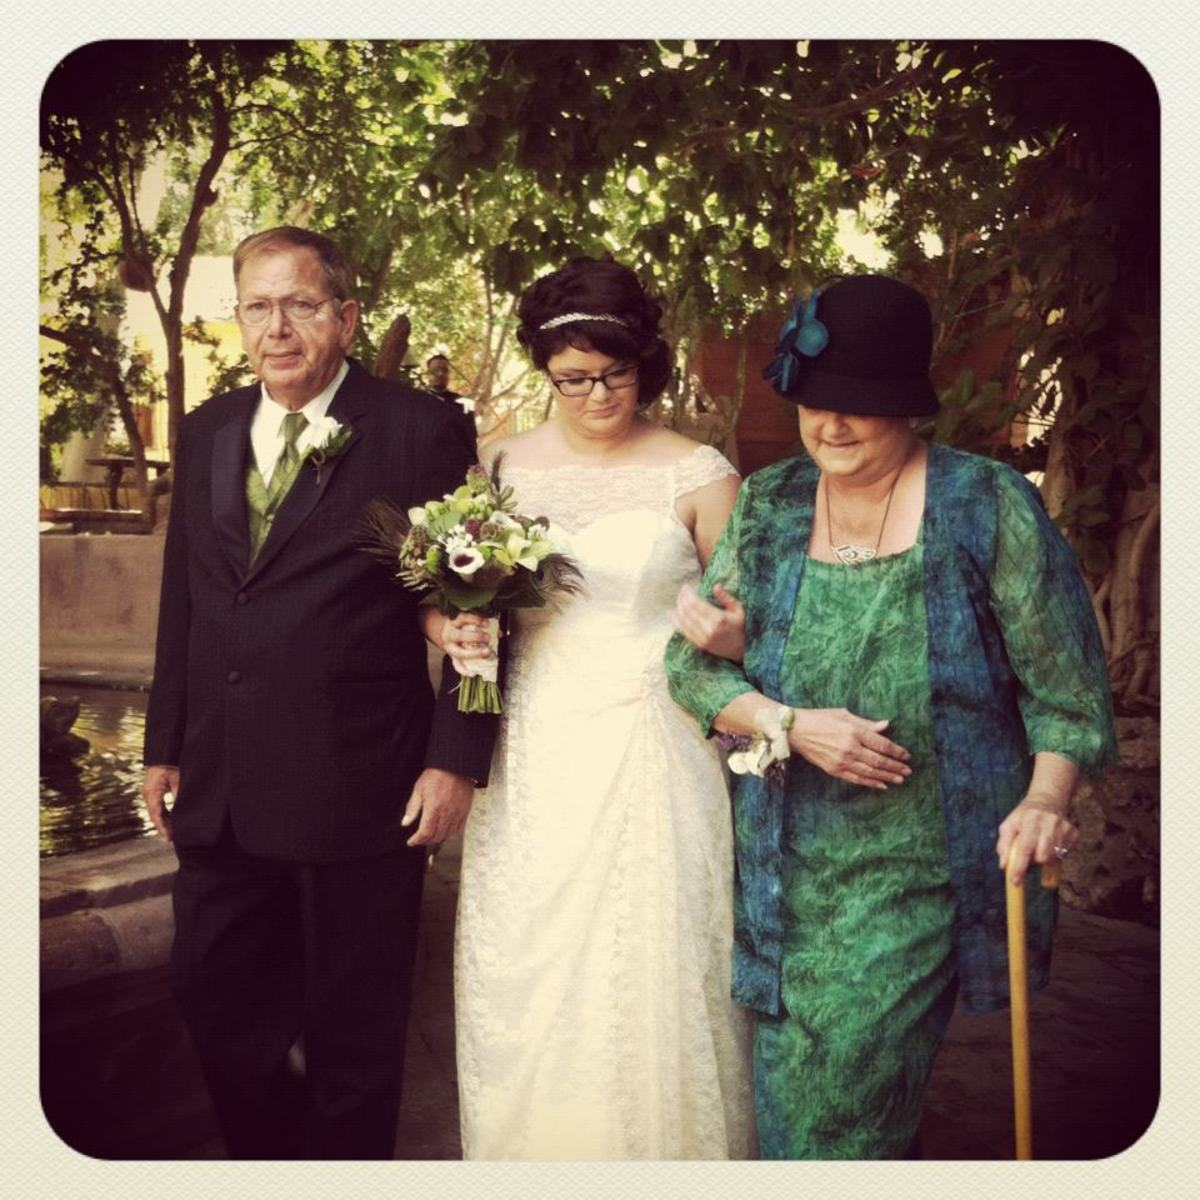 Using Peacocks And Peacock Feathers In Your Wedding Motif And Theme